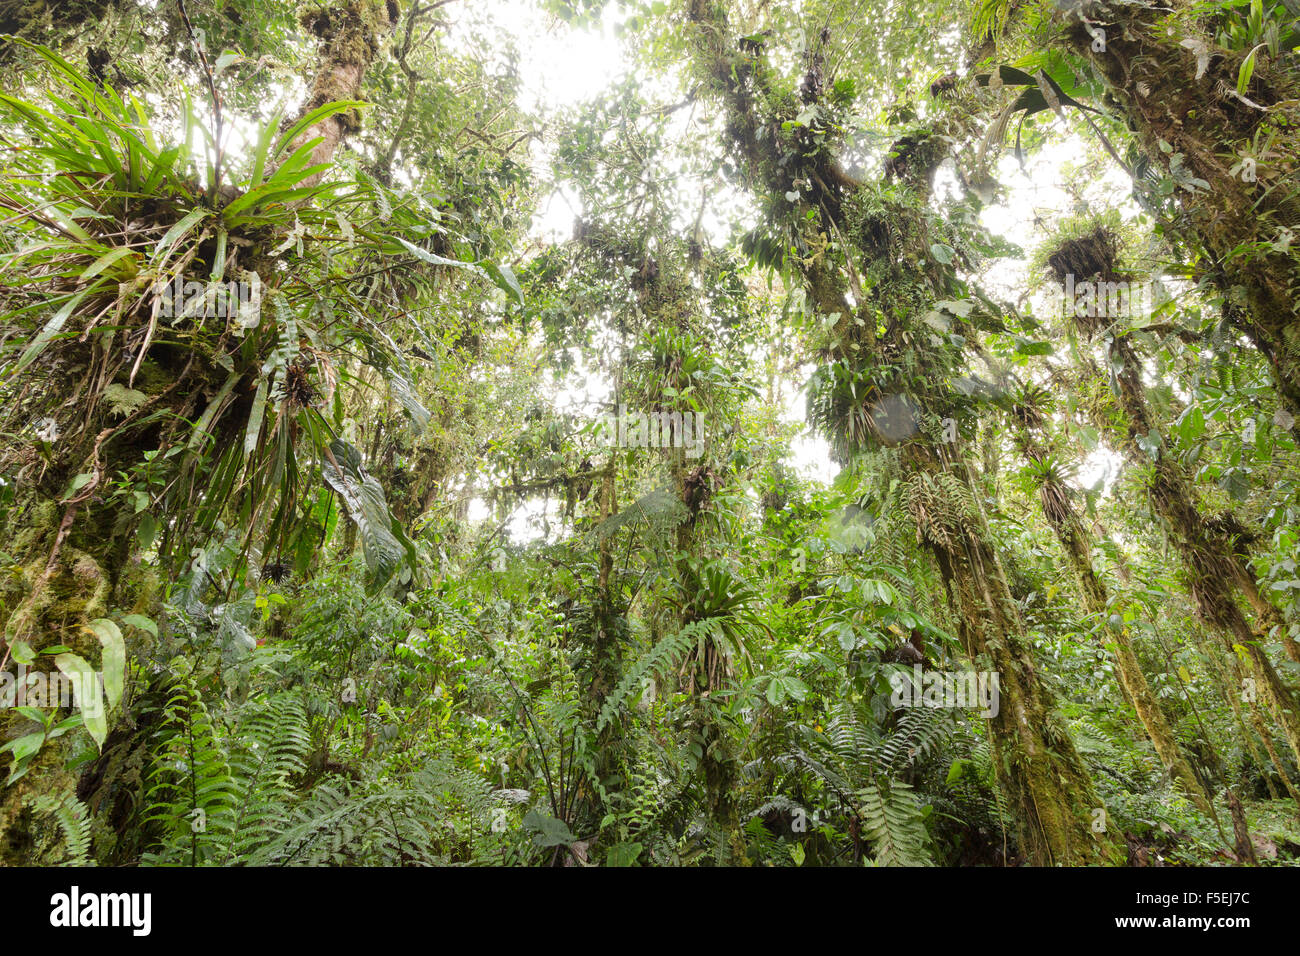 Epiphyte laden trees in humid cloudforest at 2,200m elevation on the Amazonian slopes of the Andes in Ecuador - Stock Image